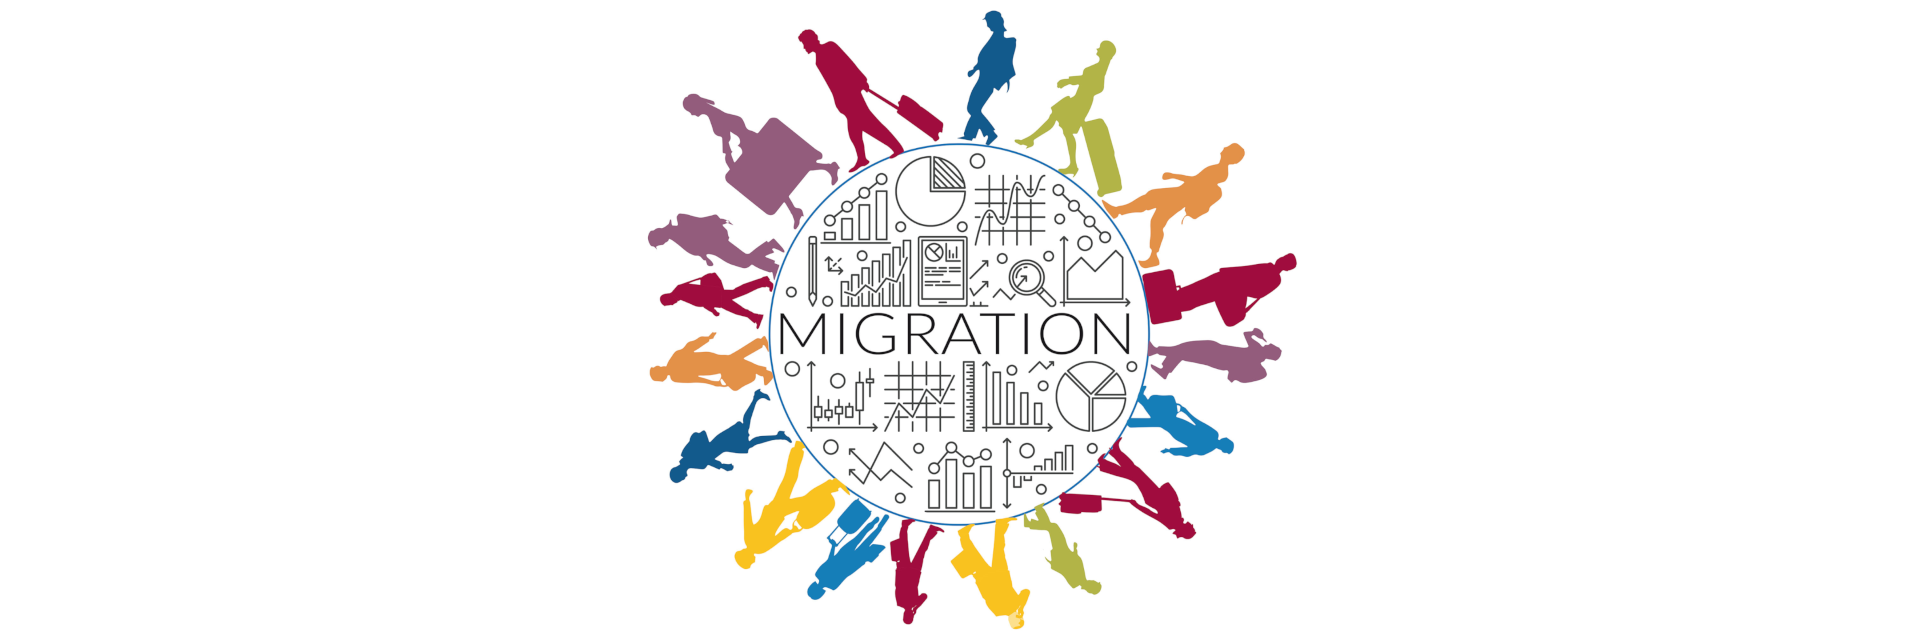 """Migration: """"We are counting on Morocco to share its expertise with African countries"""" (Director)"""